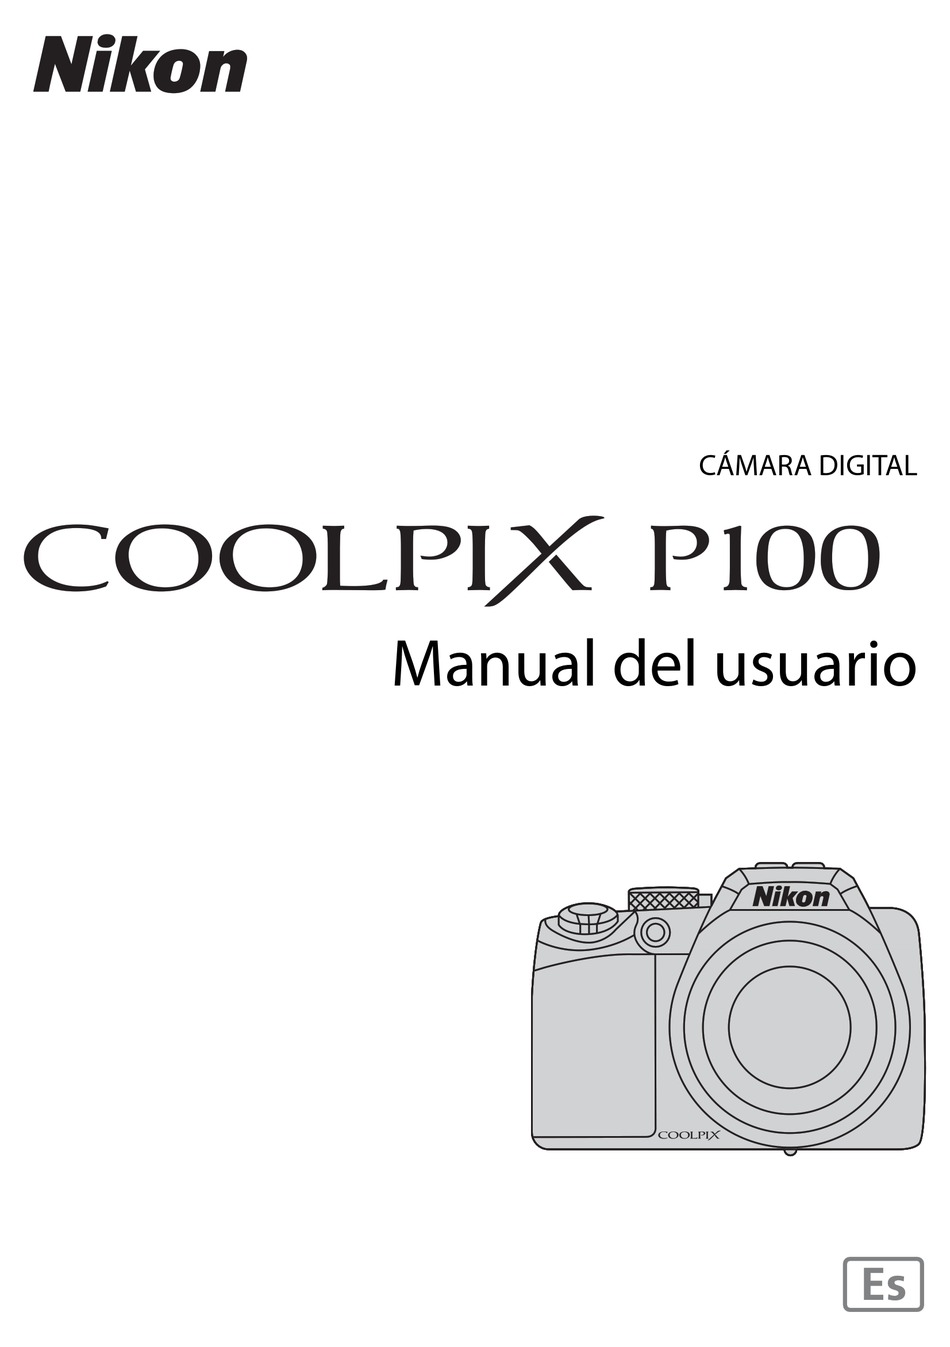 NIKON COOLPIX P100 MANUAL DEL USUARIO Pdf Download